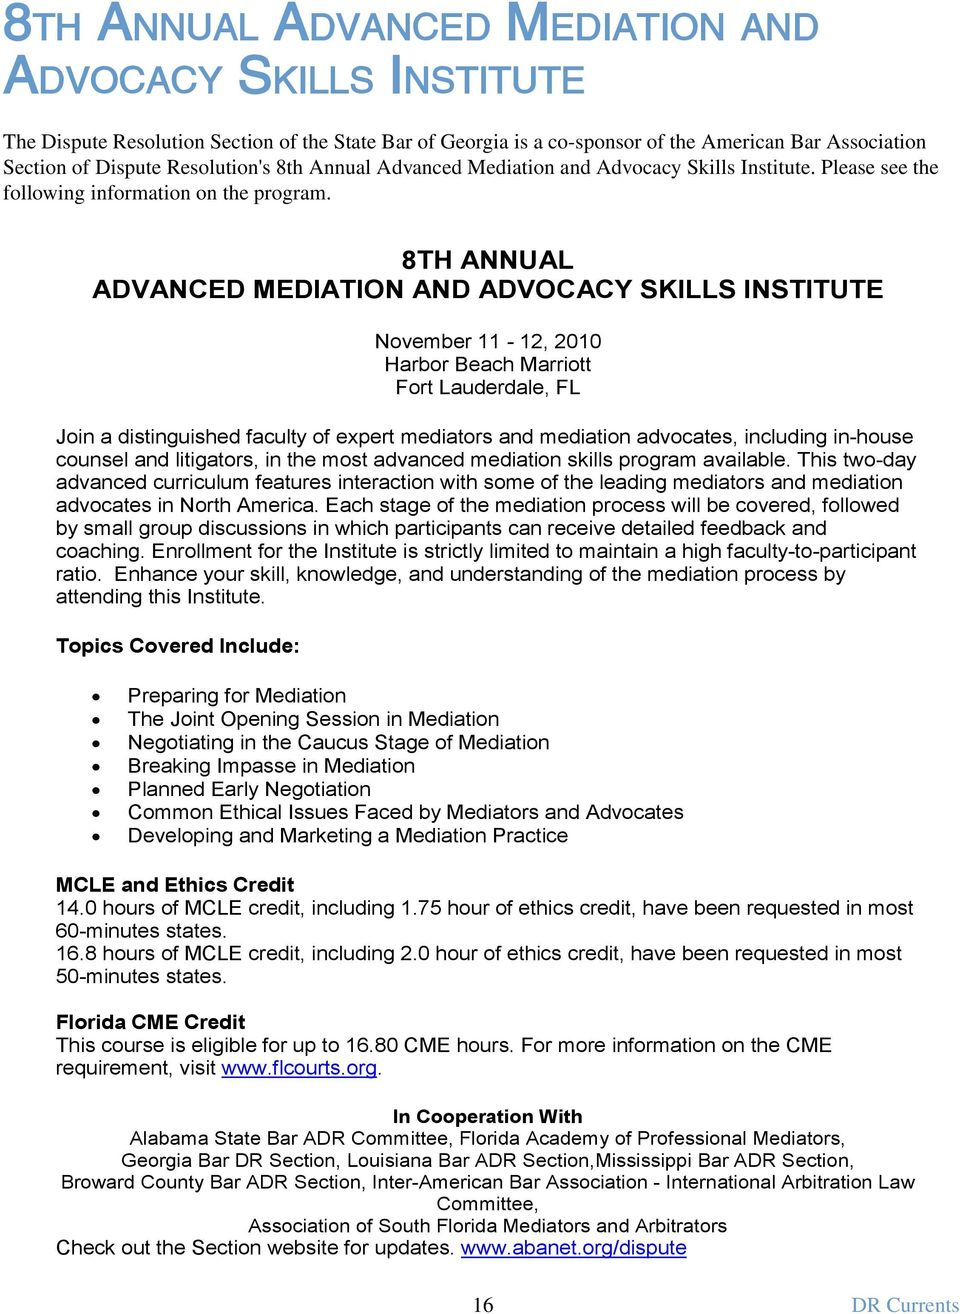 8TH ANNUAL ADVANCED MEDIATION AND ADVOCACY SKILLS INSTITUTE November 11-12, 2010 Harbor Beach Marriott Fort Lauderdale, FL Join a distinguished faculty of expert mediators and mediation advocates,